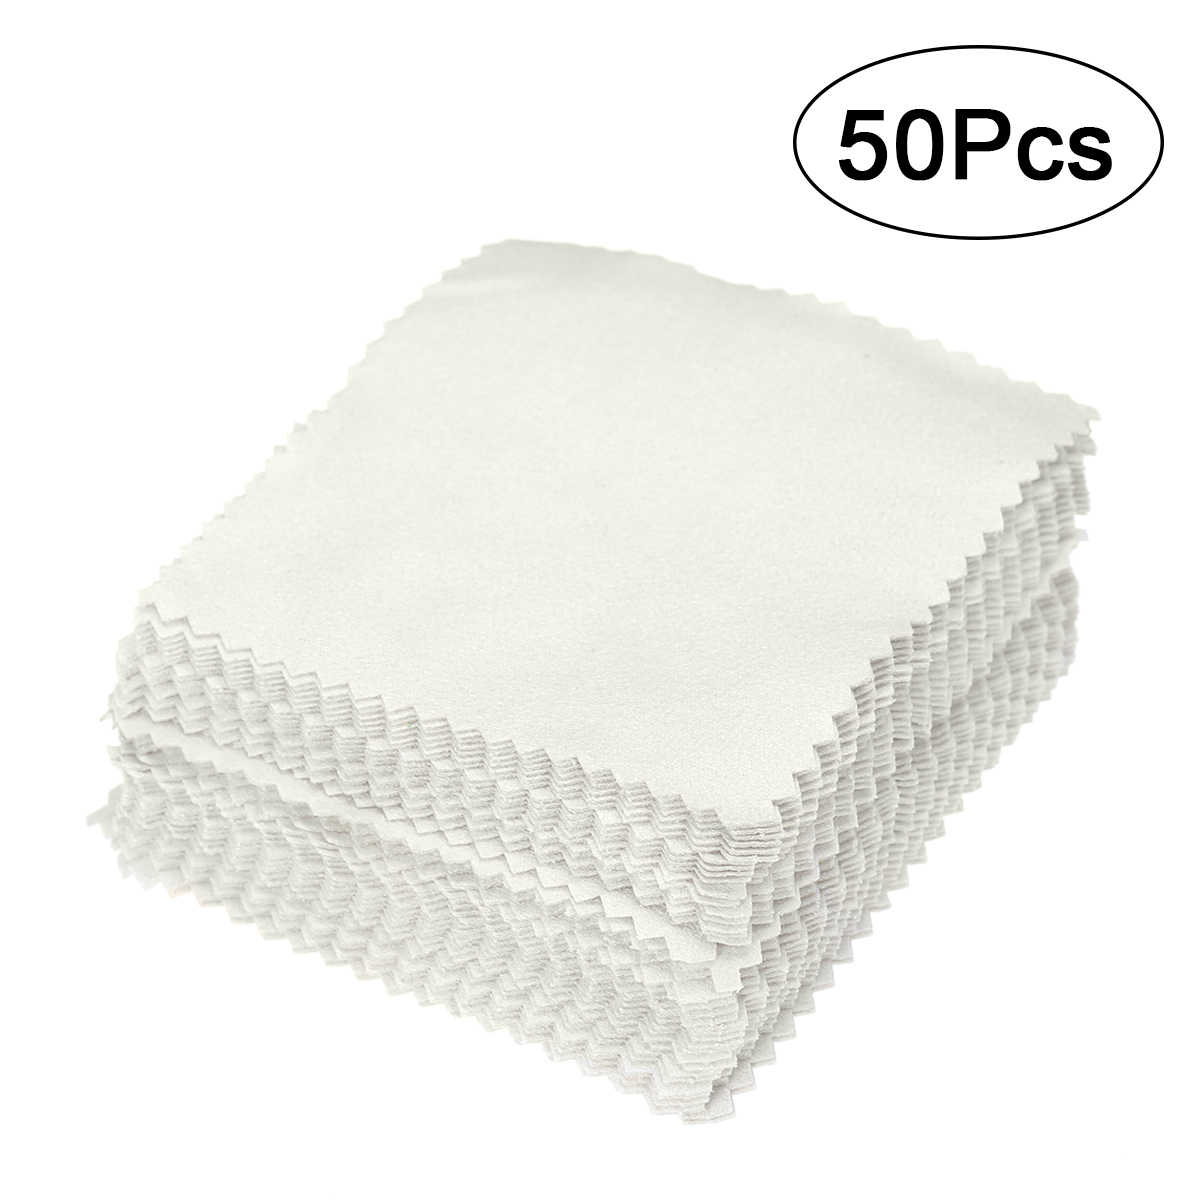 50pcs 8x8cm Jewelry Cleaning Cloth Polishing Cloth for Sterling Silver Gold Silver- Beads